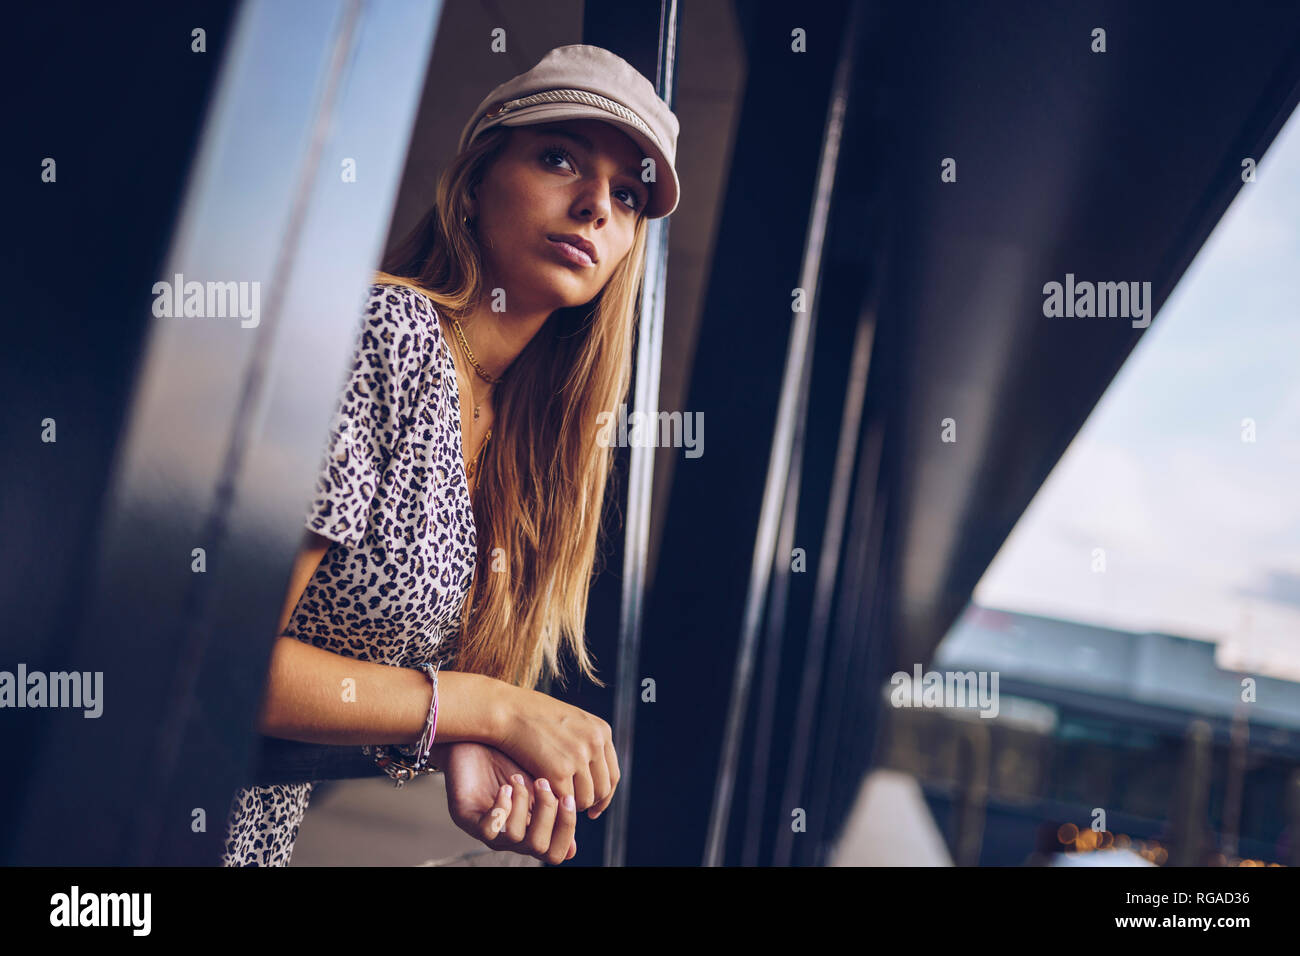 Attractive young woman in leopard print dress looking away Stock Photo